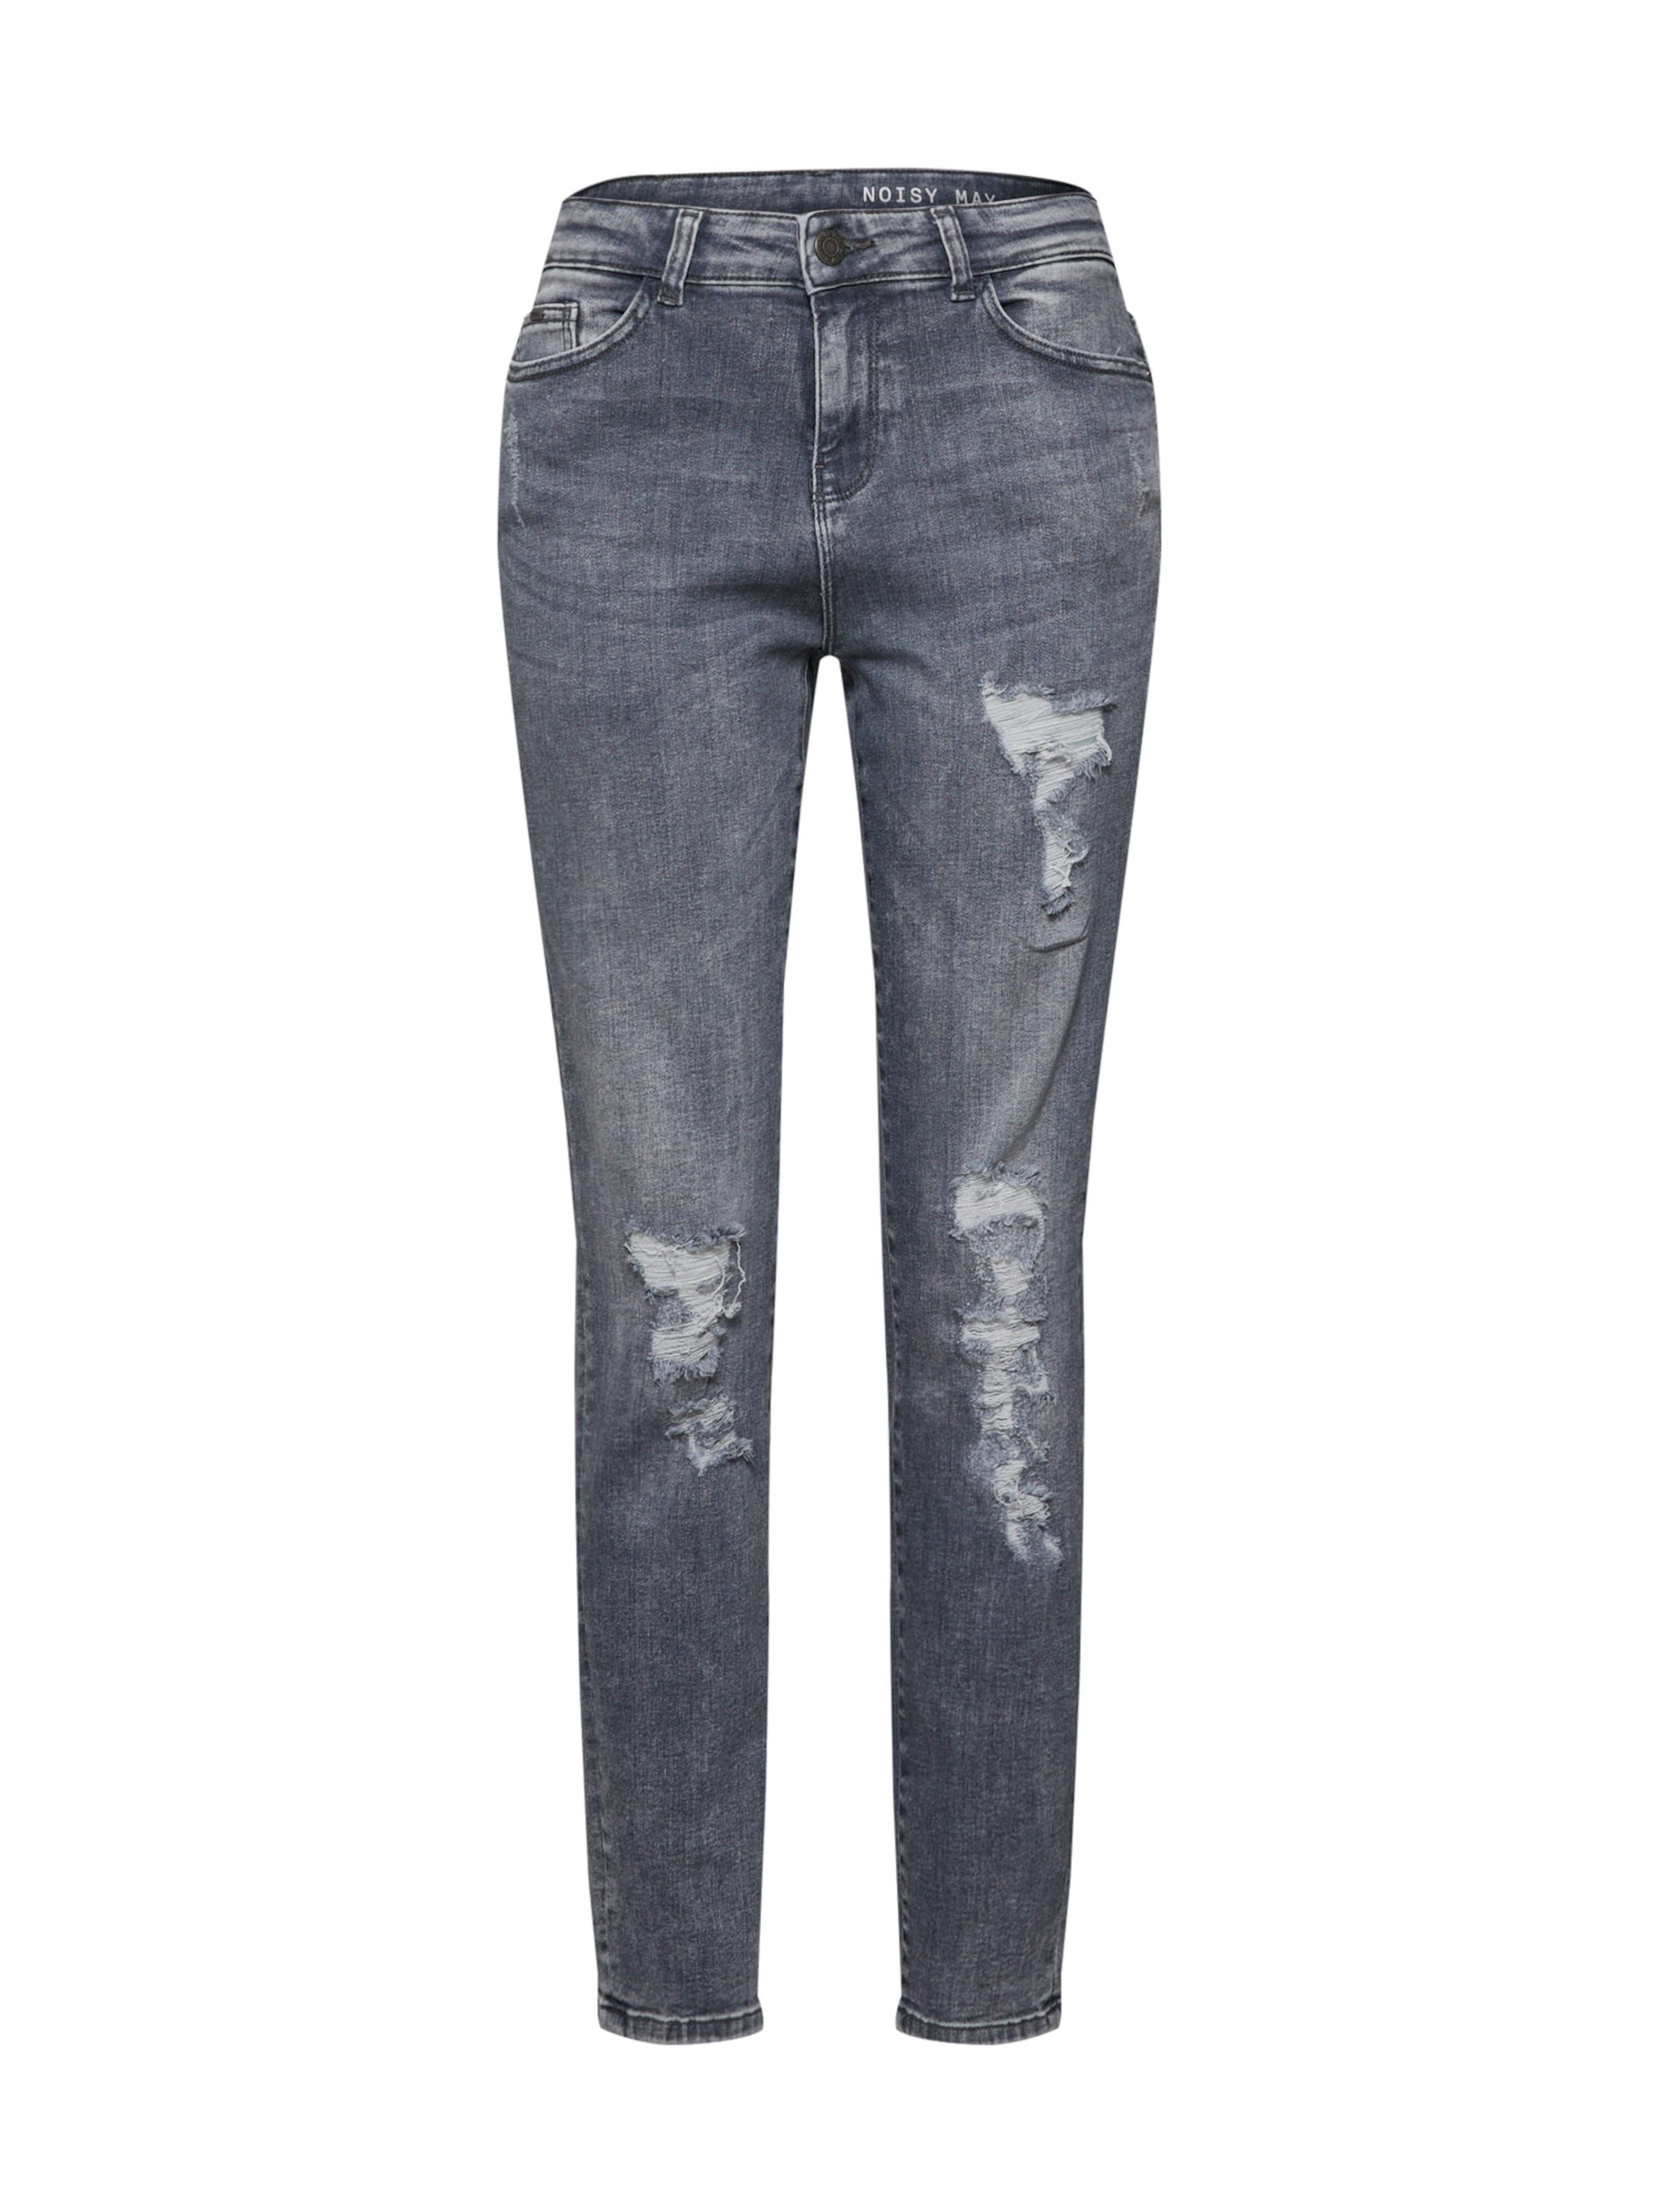 In May Grey Jeans Denim Noisy gyfb76